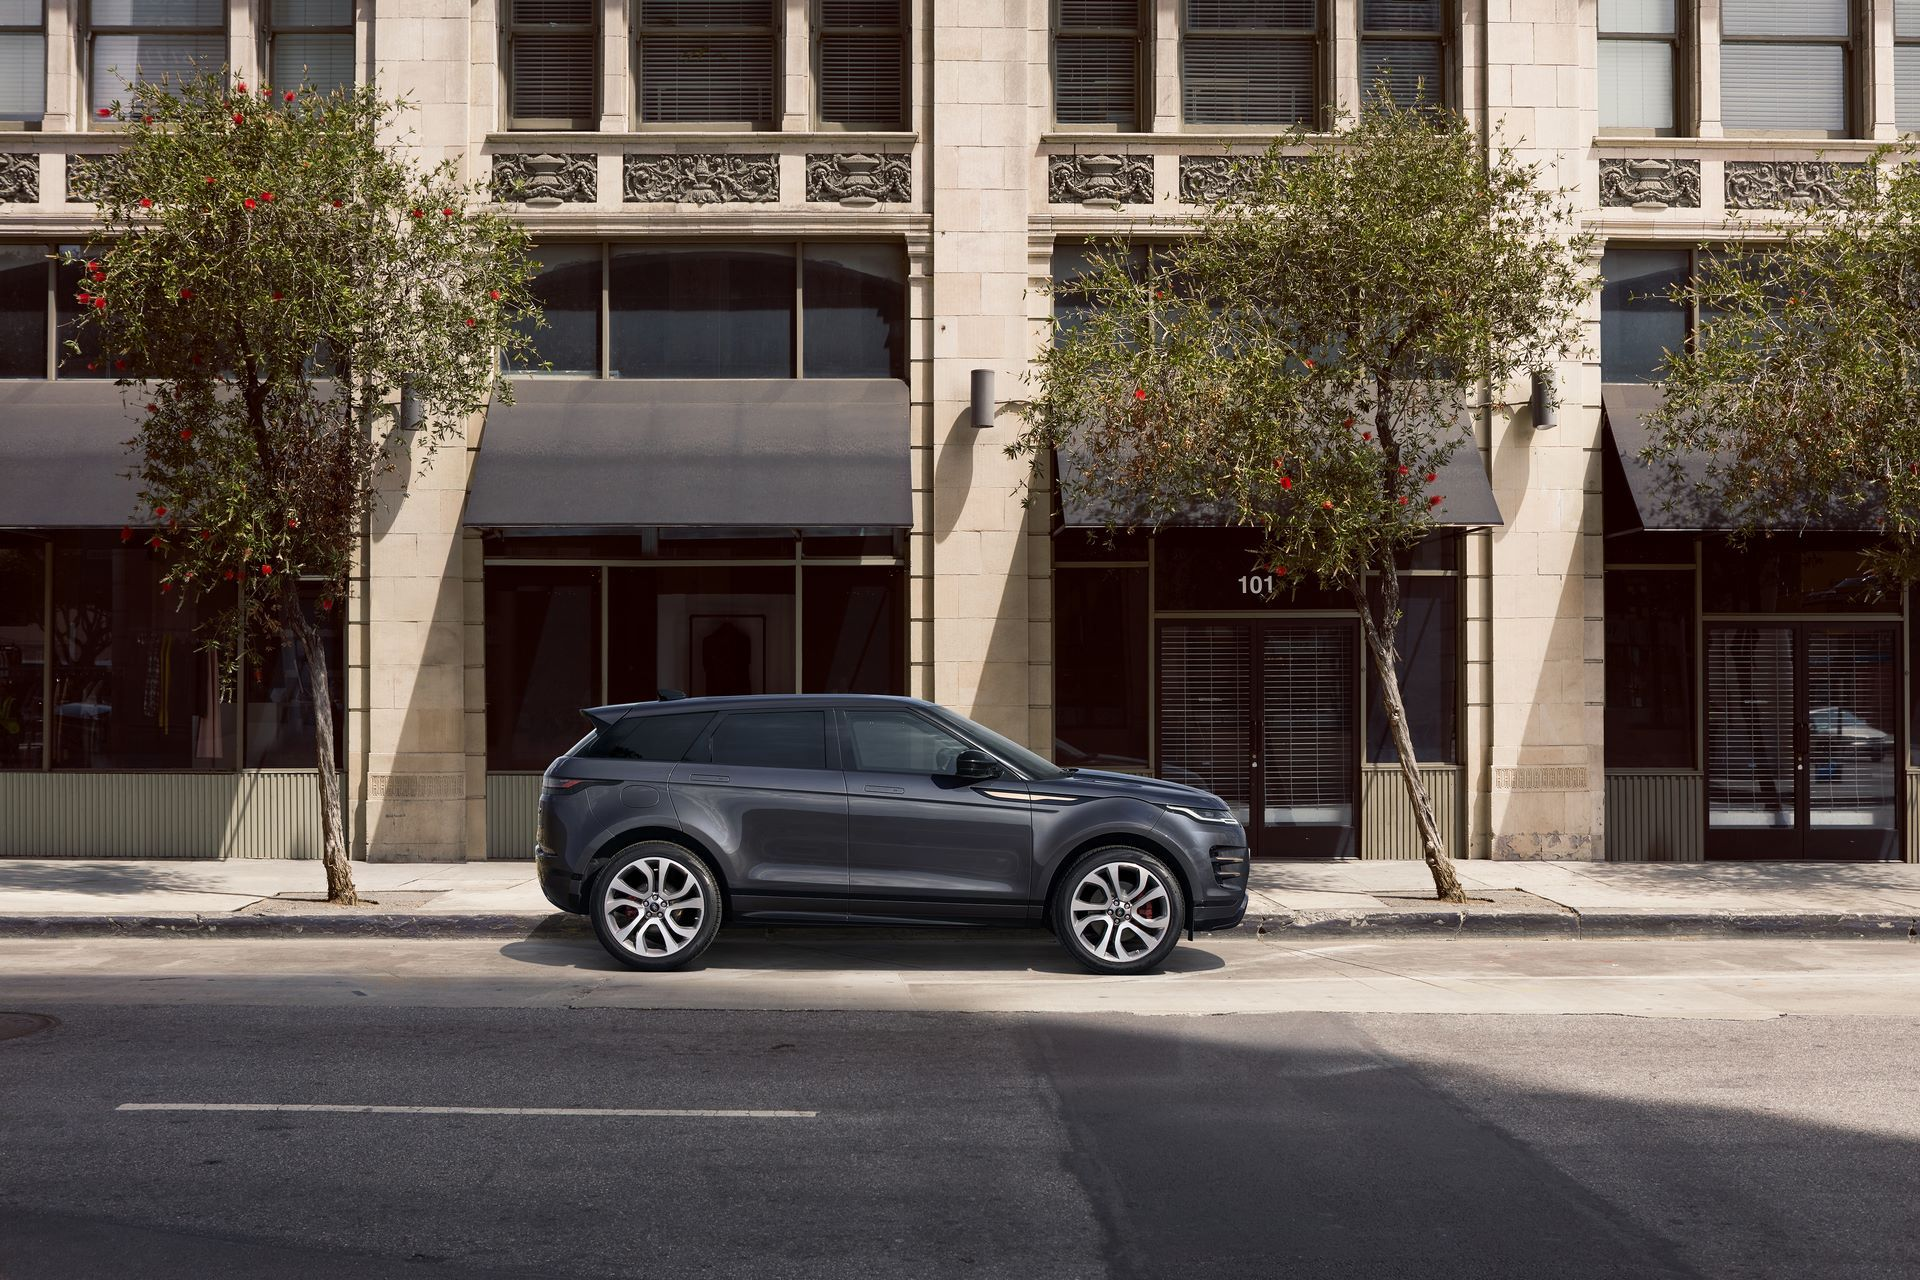 Range-Rover-Evoque-and-Land-Rover-Discovery-Sport-MHEV-diesel-35